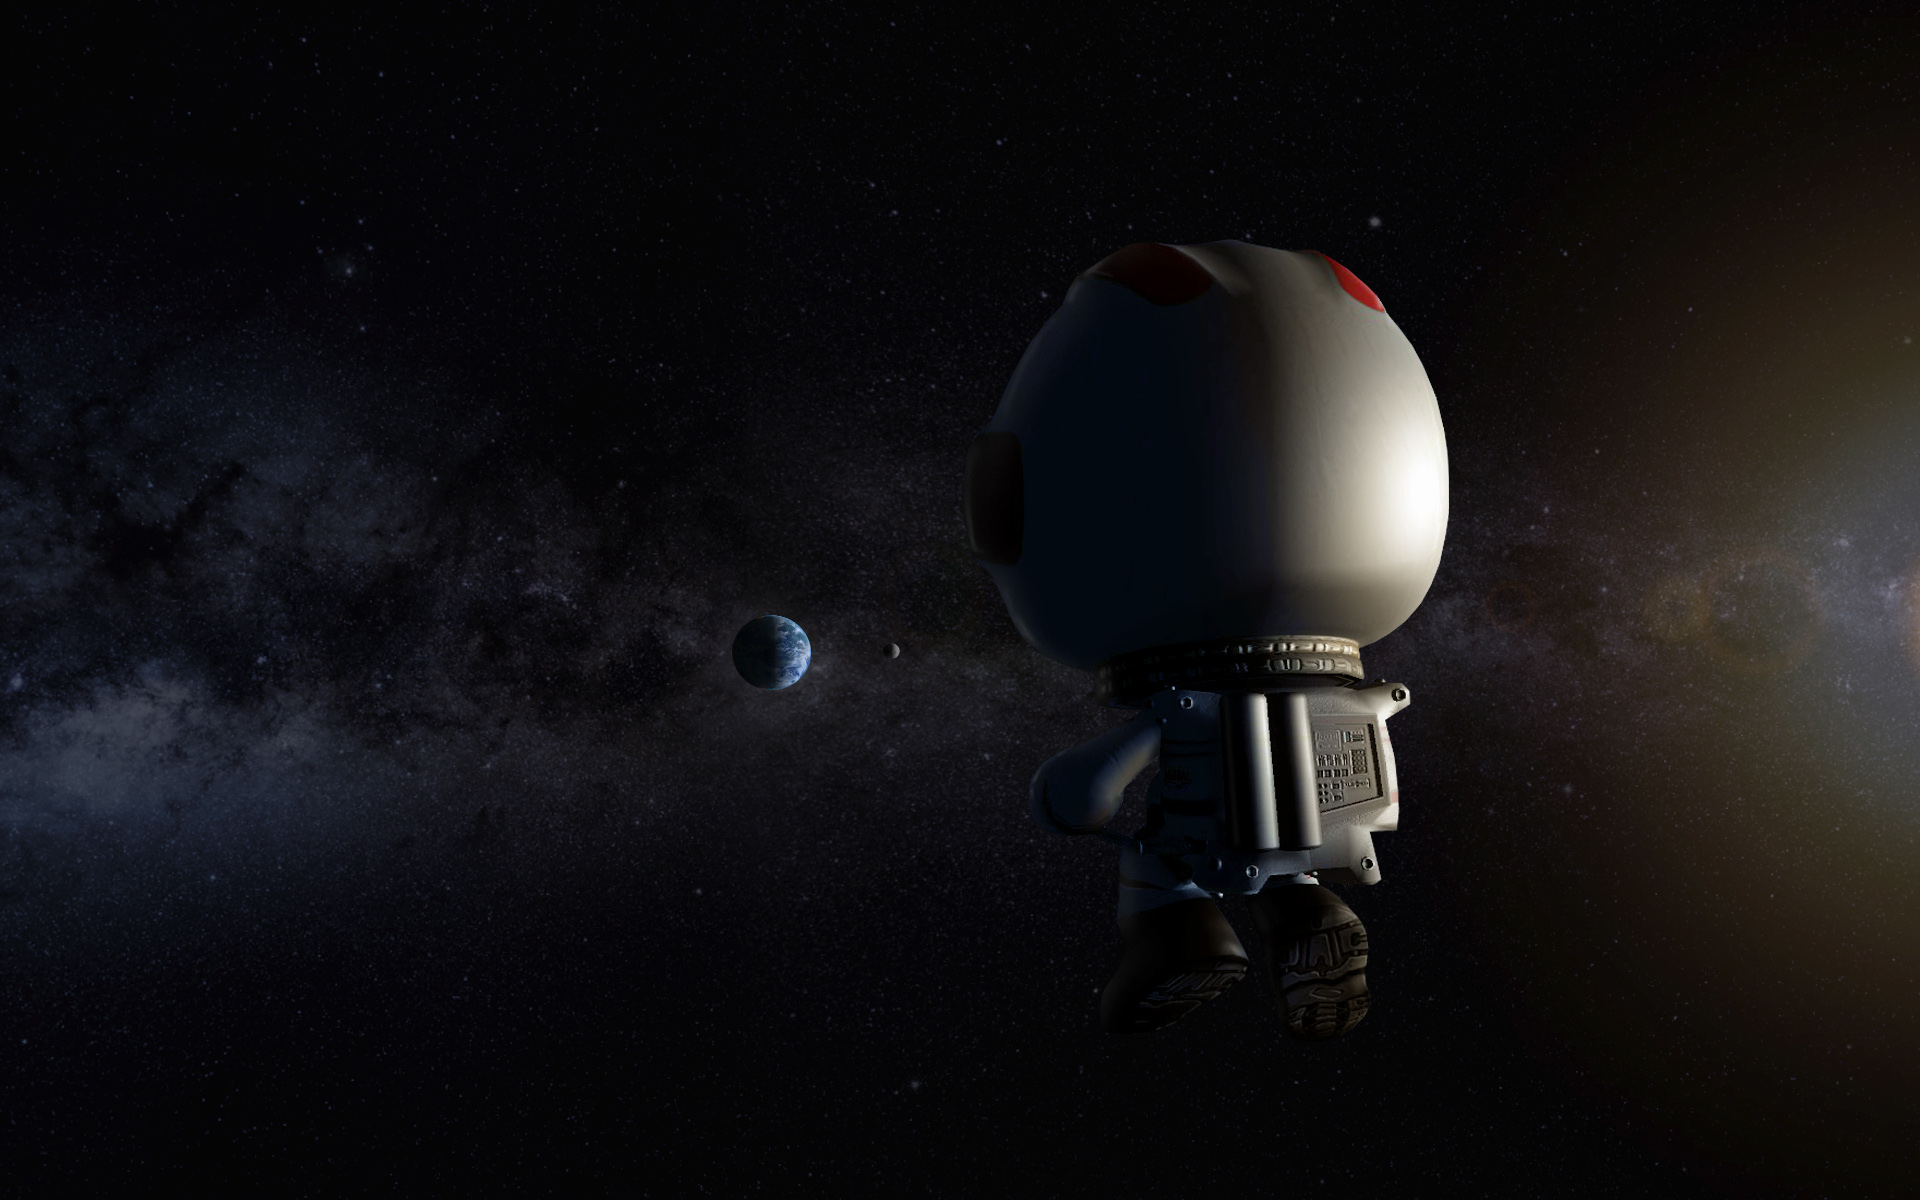 Twnimjz - Outer Space , HD Wallpaper & Backgrounds